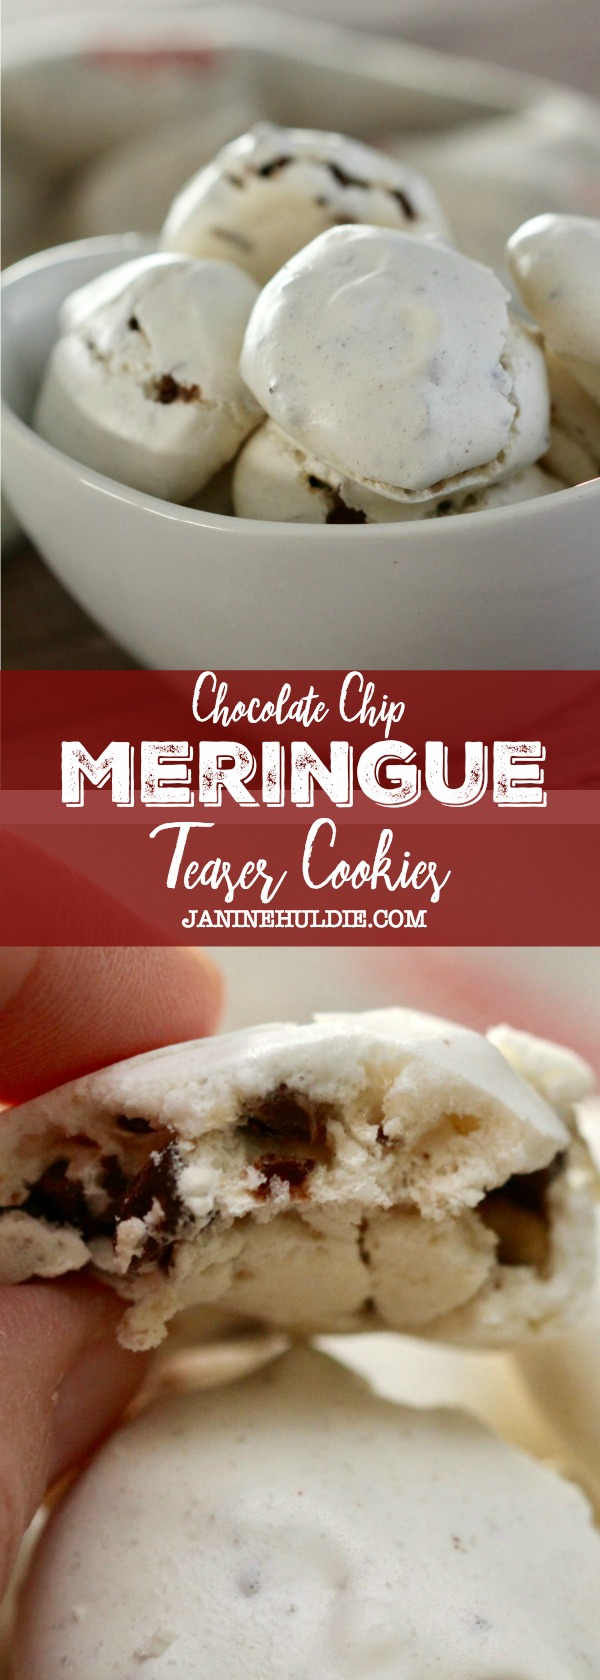 Meringue, This Mom's Confessions